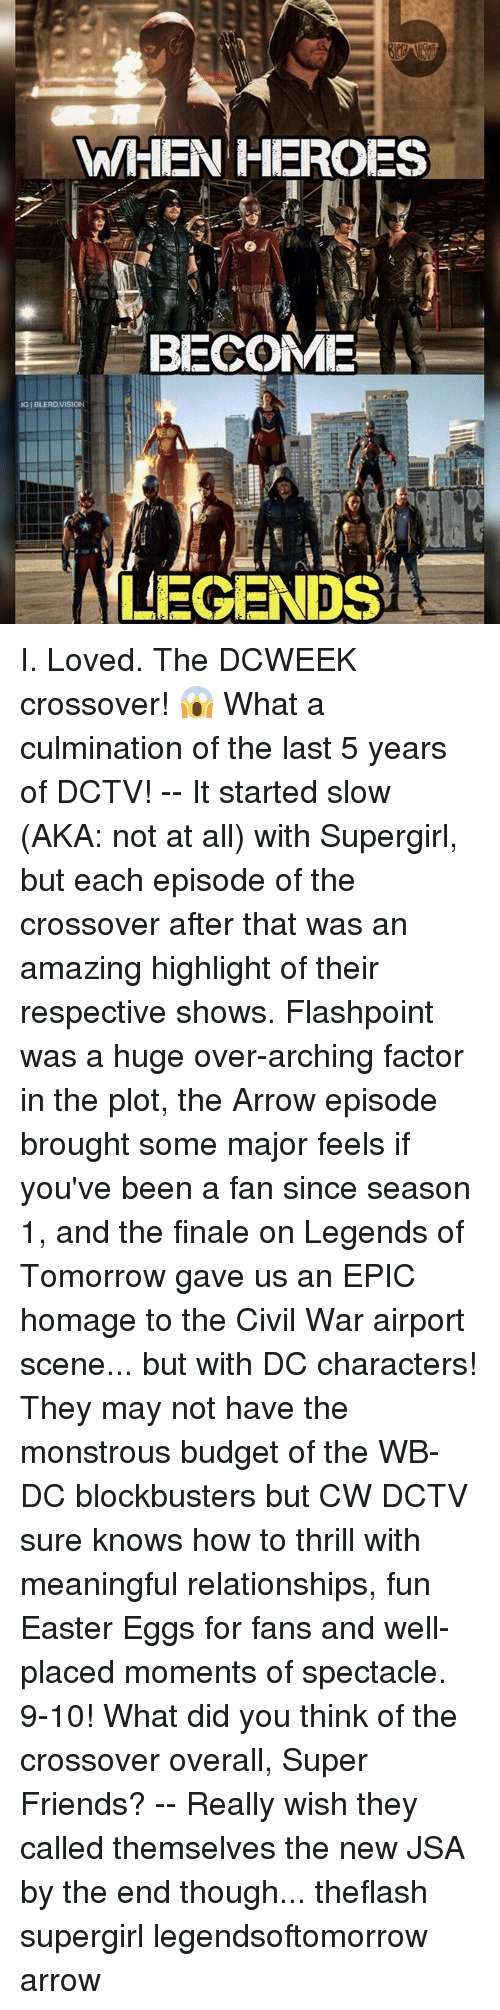 Blockbuster, Easter, and Memes: WHEN HEROES  BECOME  IGIBLERD VISION  LEGENDS I. Loved. The DCWEEK crossover! 😱 What a culmination of the last 5 years of DCTV! -- It started slow (AKA: not at all) with Supergirl, but each episode of the crossover after that was an amazing highlight of their respective shows. Flashpoint was a huge over-arching factor in the plot, the Arrow episode brought some major feels if you've been a fan since season 1, and the finale on Legends of Tomorrow gave us an EPIC homage to the Civil War airport scene... but with DC characters! They may not have the monstrous budget of the WB-DC blockbusters but CW DCTV sure knows how to thrill with meaningful relationships, fun Easter Eggs for fans and well-placed moments of spectacle. 9-10! What did you think of the crossover overall, Super Friends? -- Really wish they called themselves the new JSA by the end though... theflash supergirl legendsoftomorrow arrow